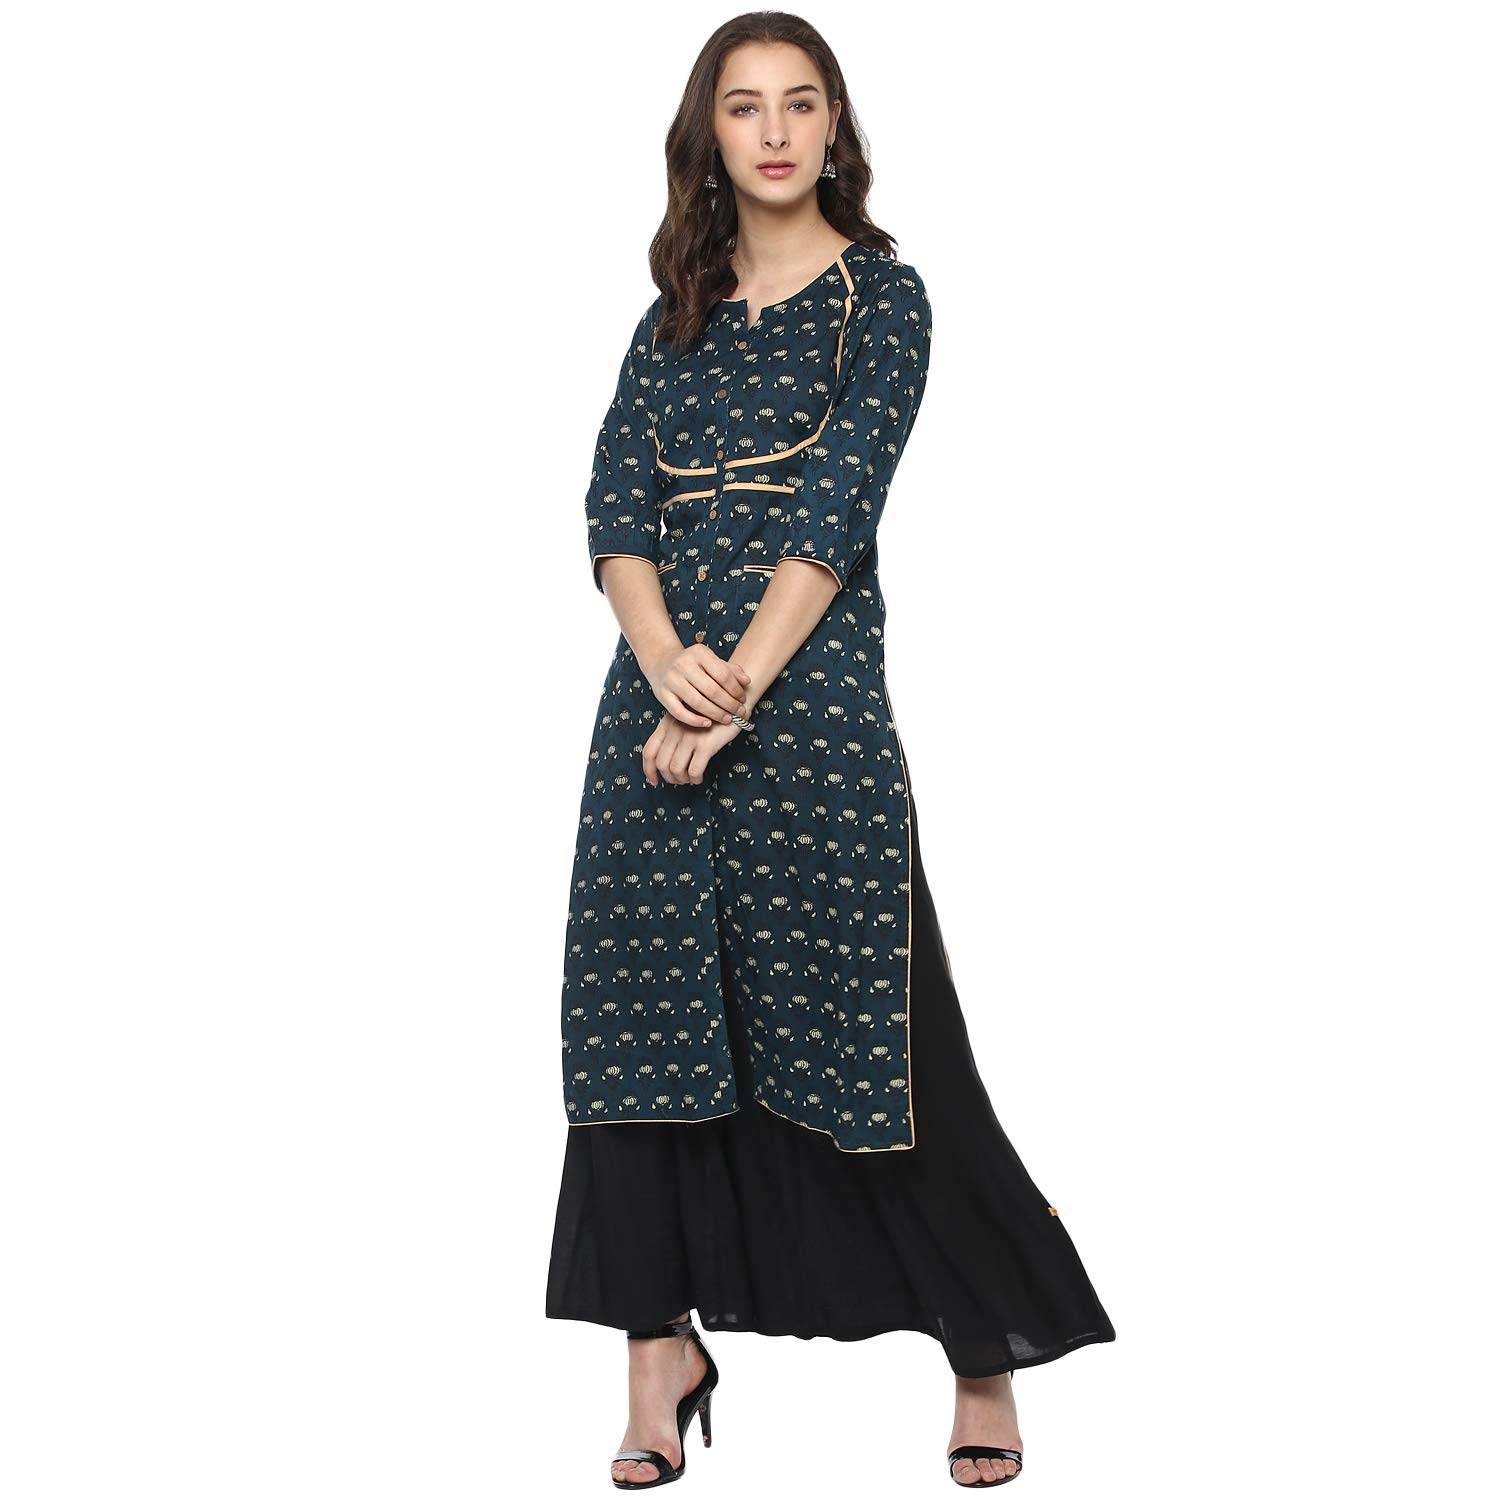 a4d1af0c10d Vedic Green Cotton Knee Length Printed Kurti for Women  Amazon.in  Clothing    Accessories